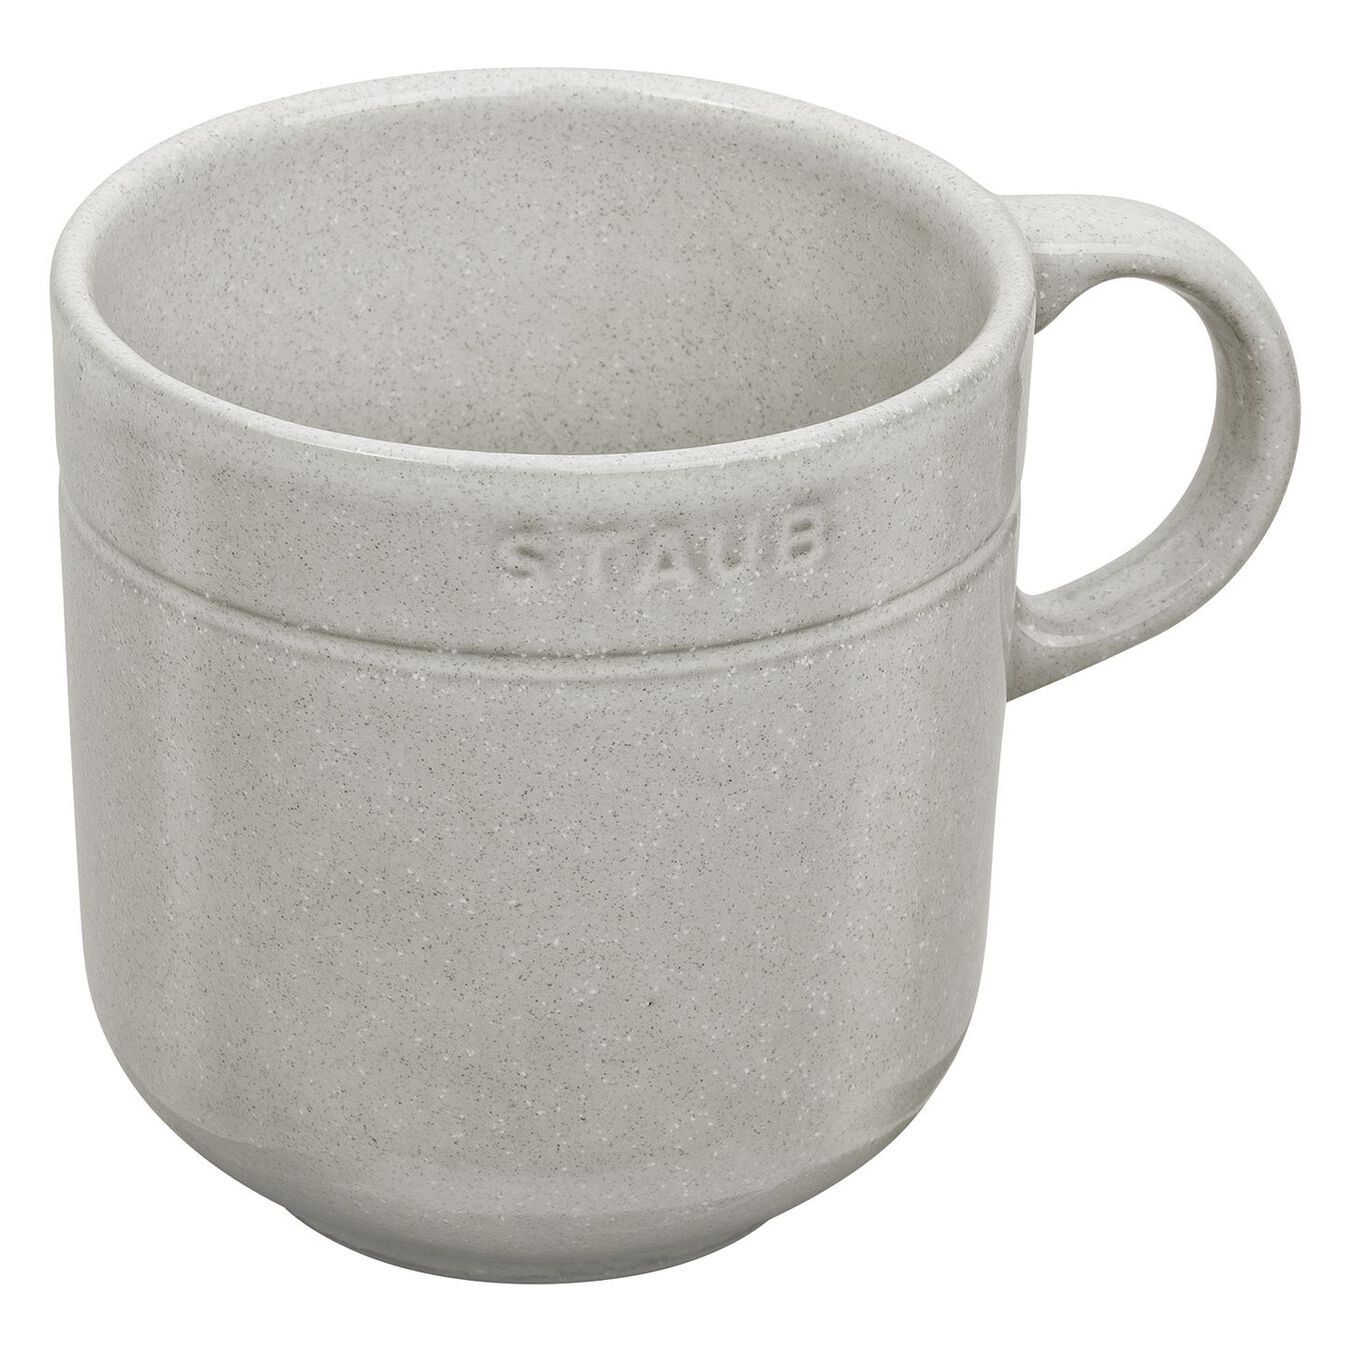 Tazza - 300 ml, ceramica,,large 1